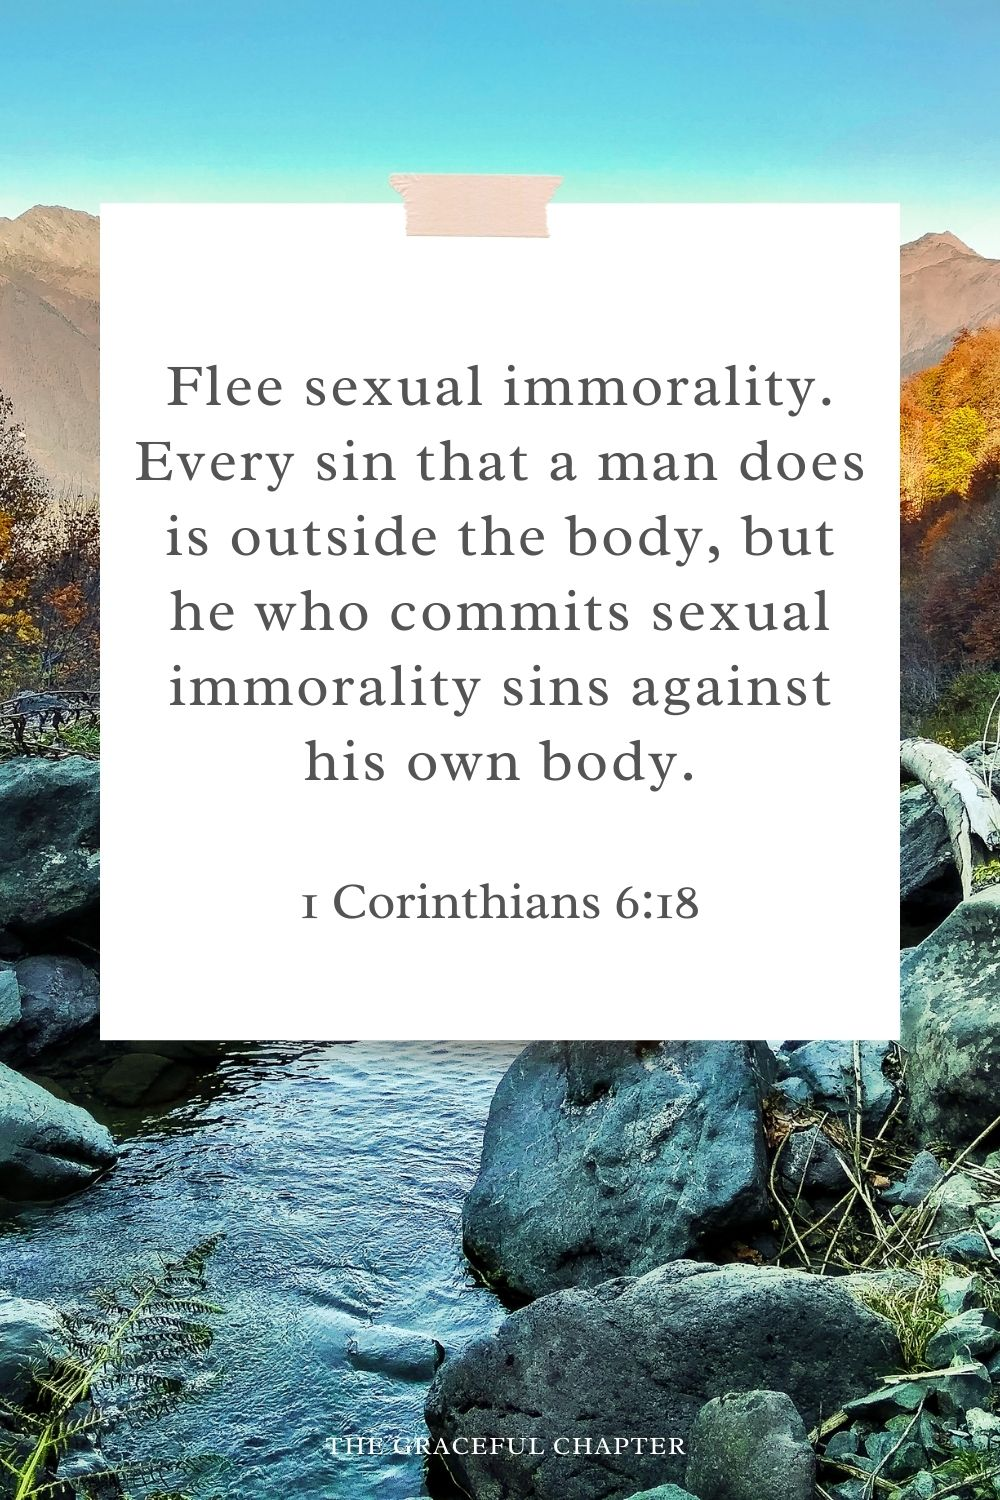 Flee sexual immorality. Every sin that a man does is outside the body, but he who commits sexual immorality sins against his own body. 1 Corinthians 6:18